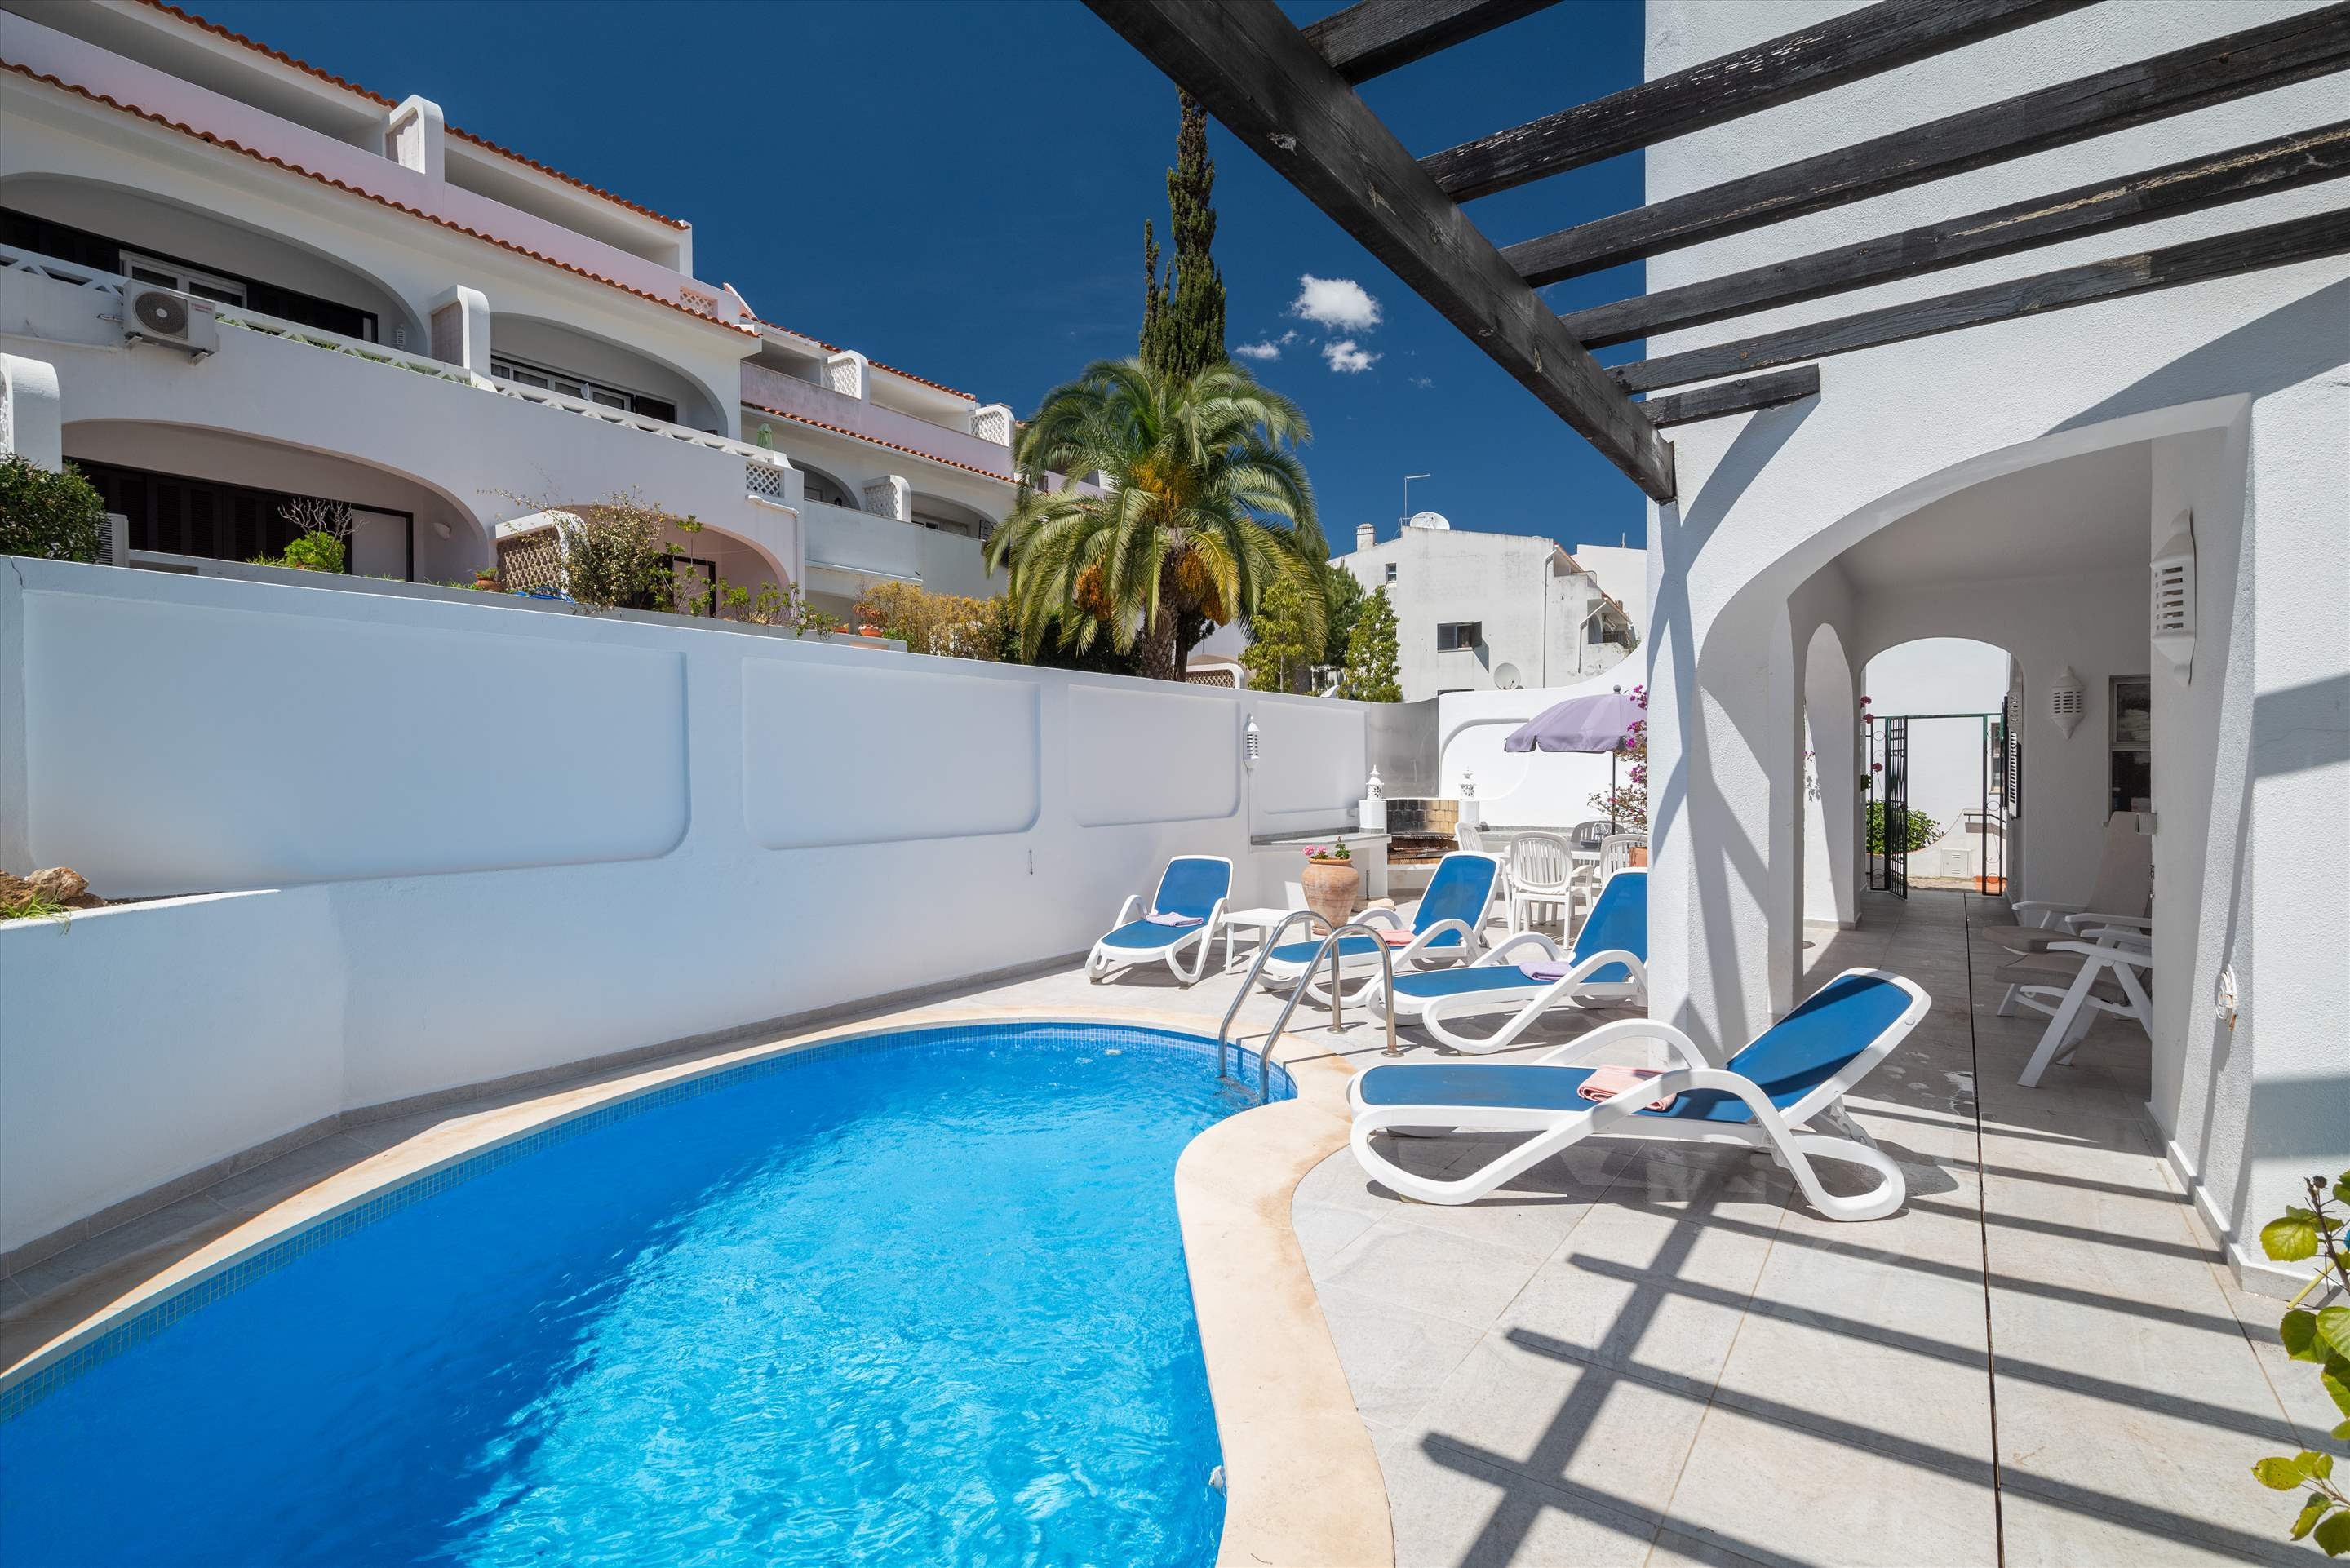 Casa Bella, 3 bedroom apartment in Vale do Lobo, Algarve Photo #15